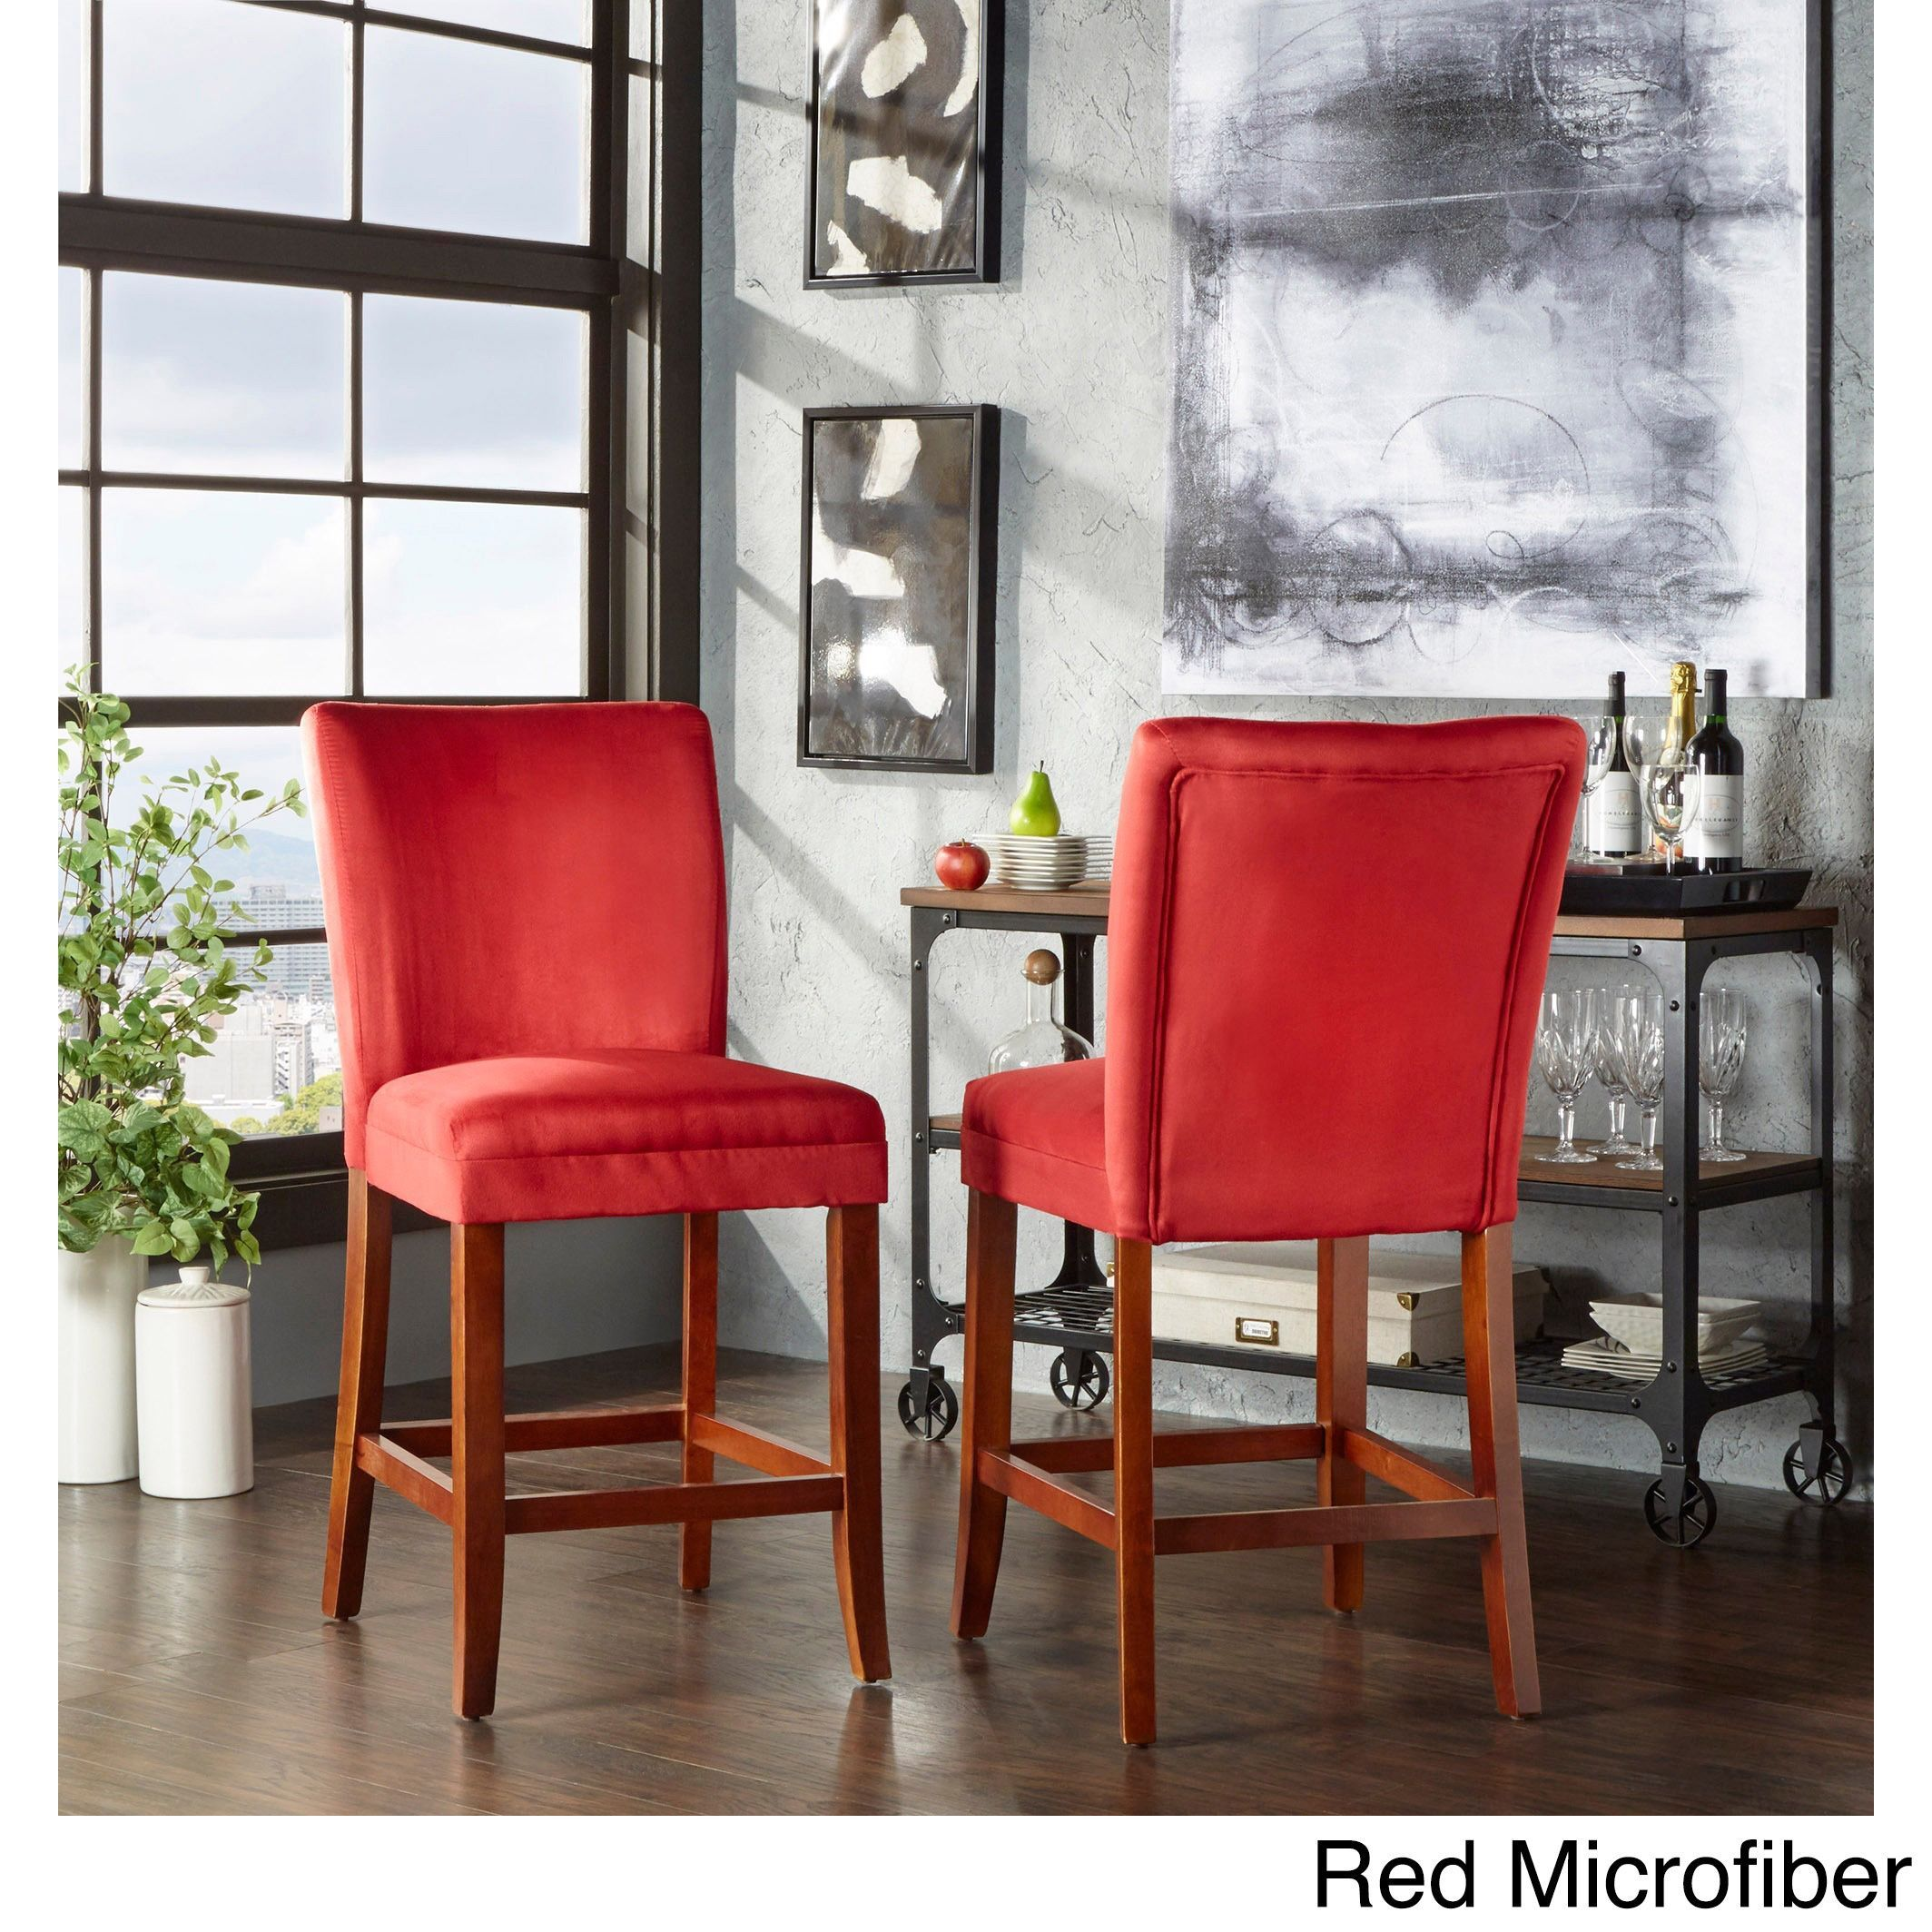 Parson Classic Upholstered Counter Height High Back Chairs By Tribecca Home  (Set Of 2) (Multi Colors Striped Fabric), Brown (Cherry), Durable